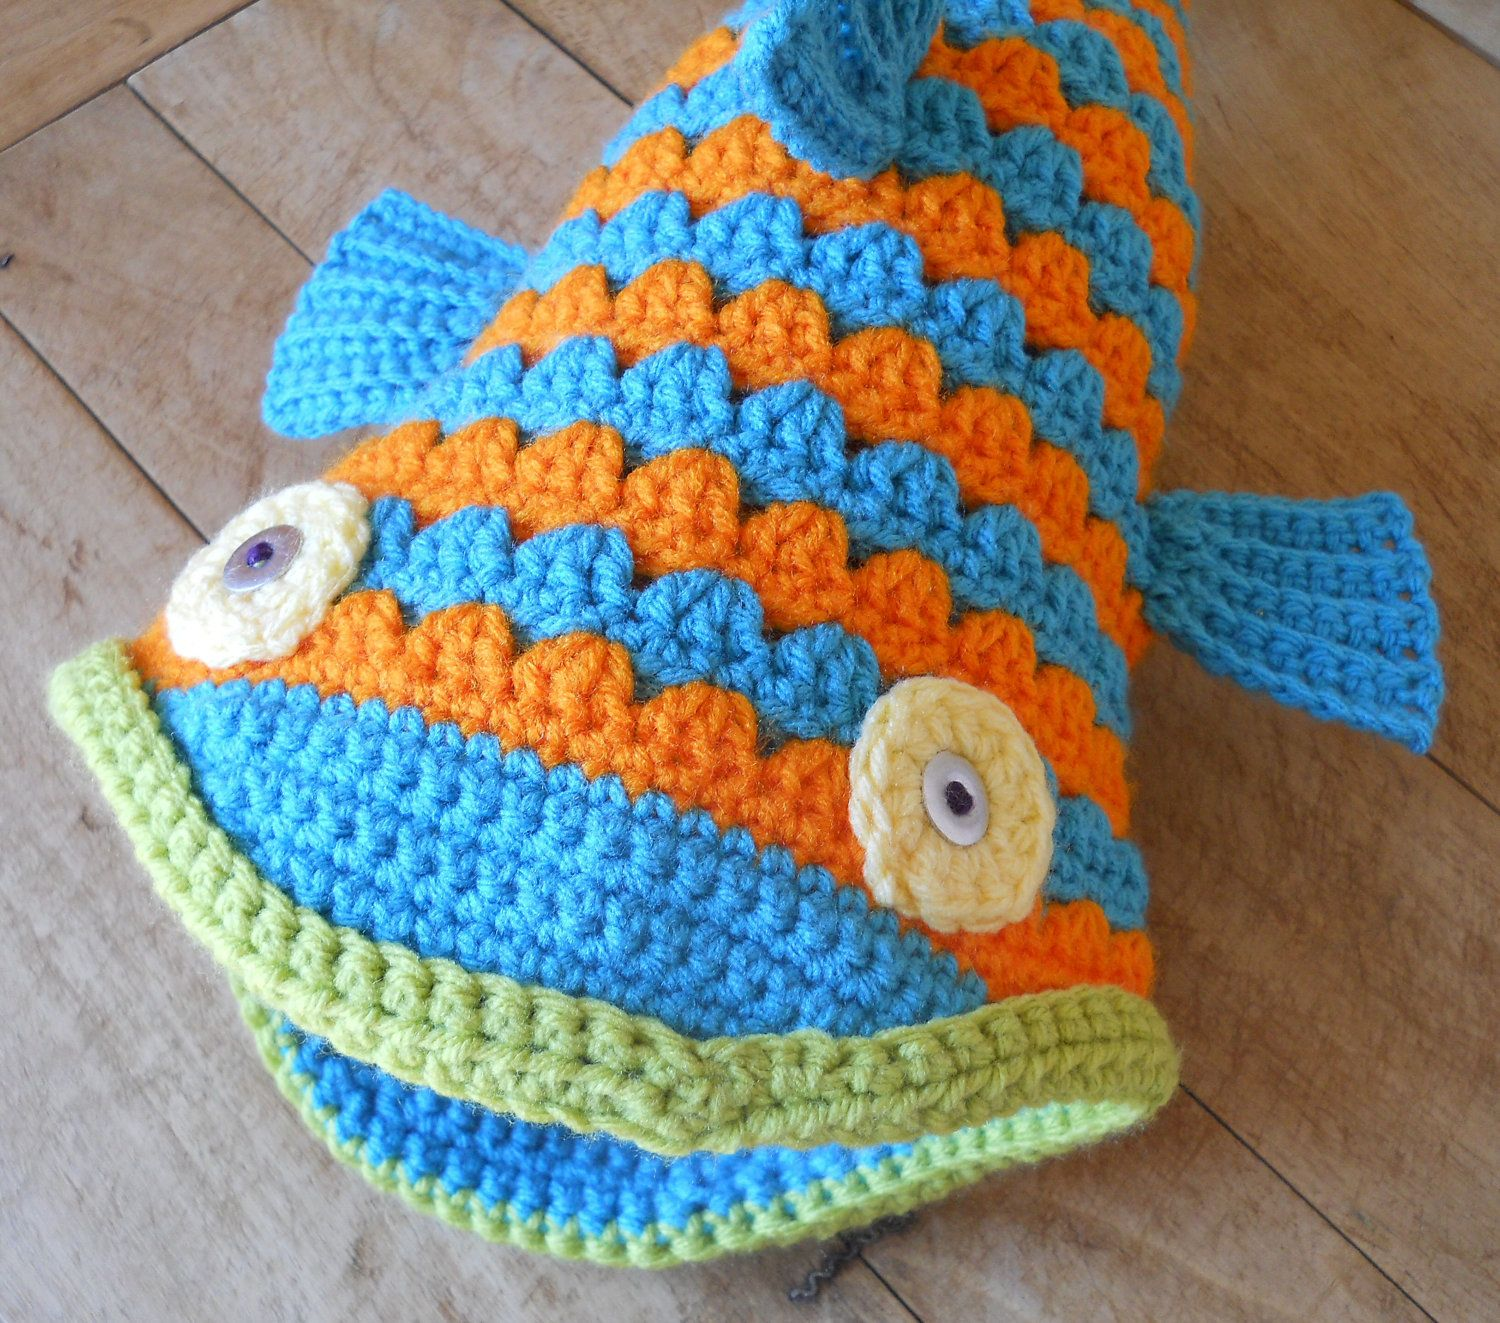 Crochet Fish Hat Pattern and Tutorial | Crochet fish, Fish and Crochet